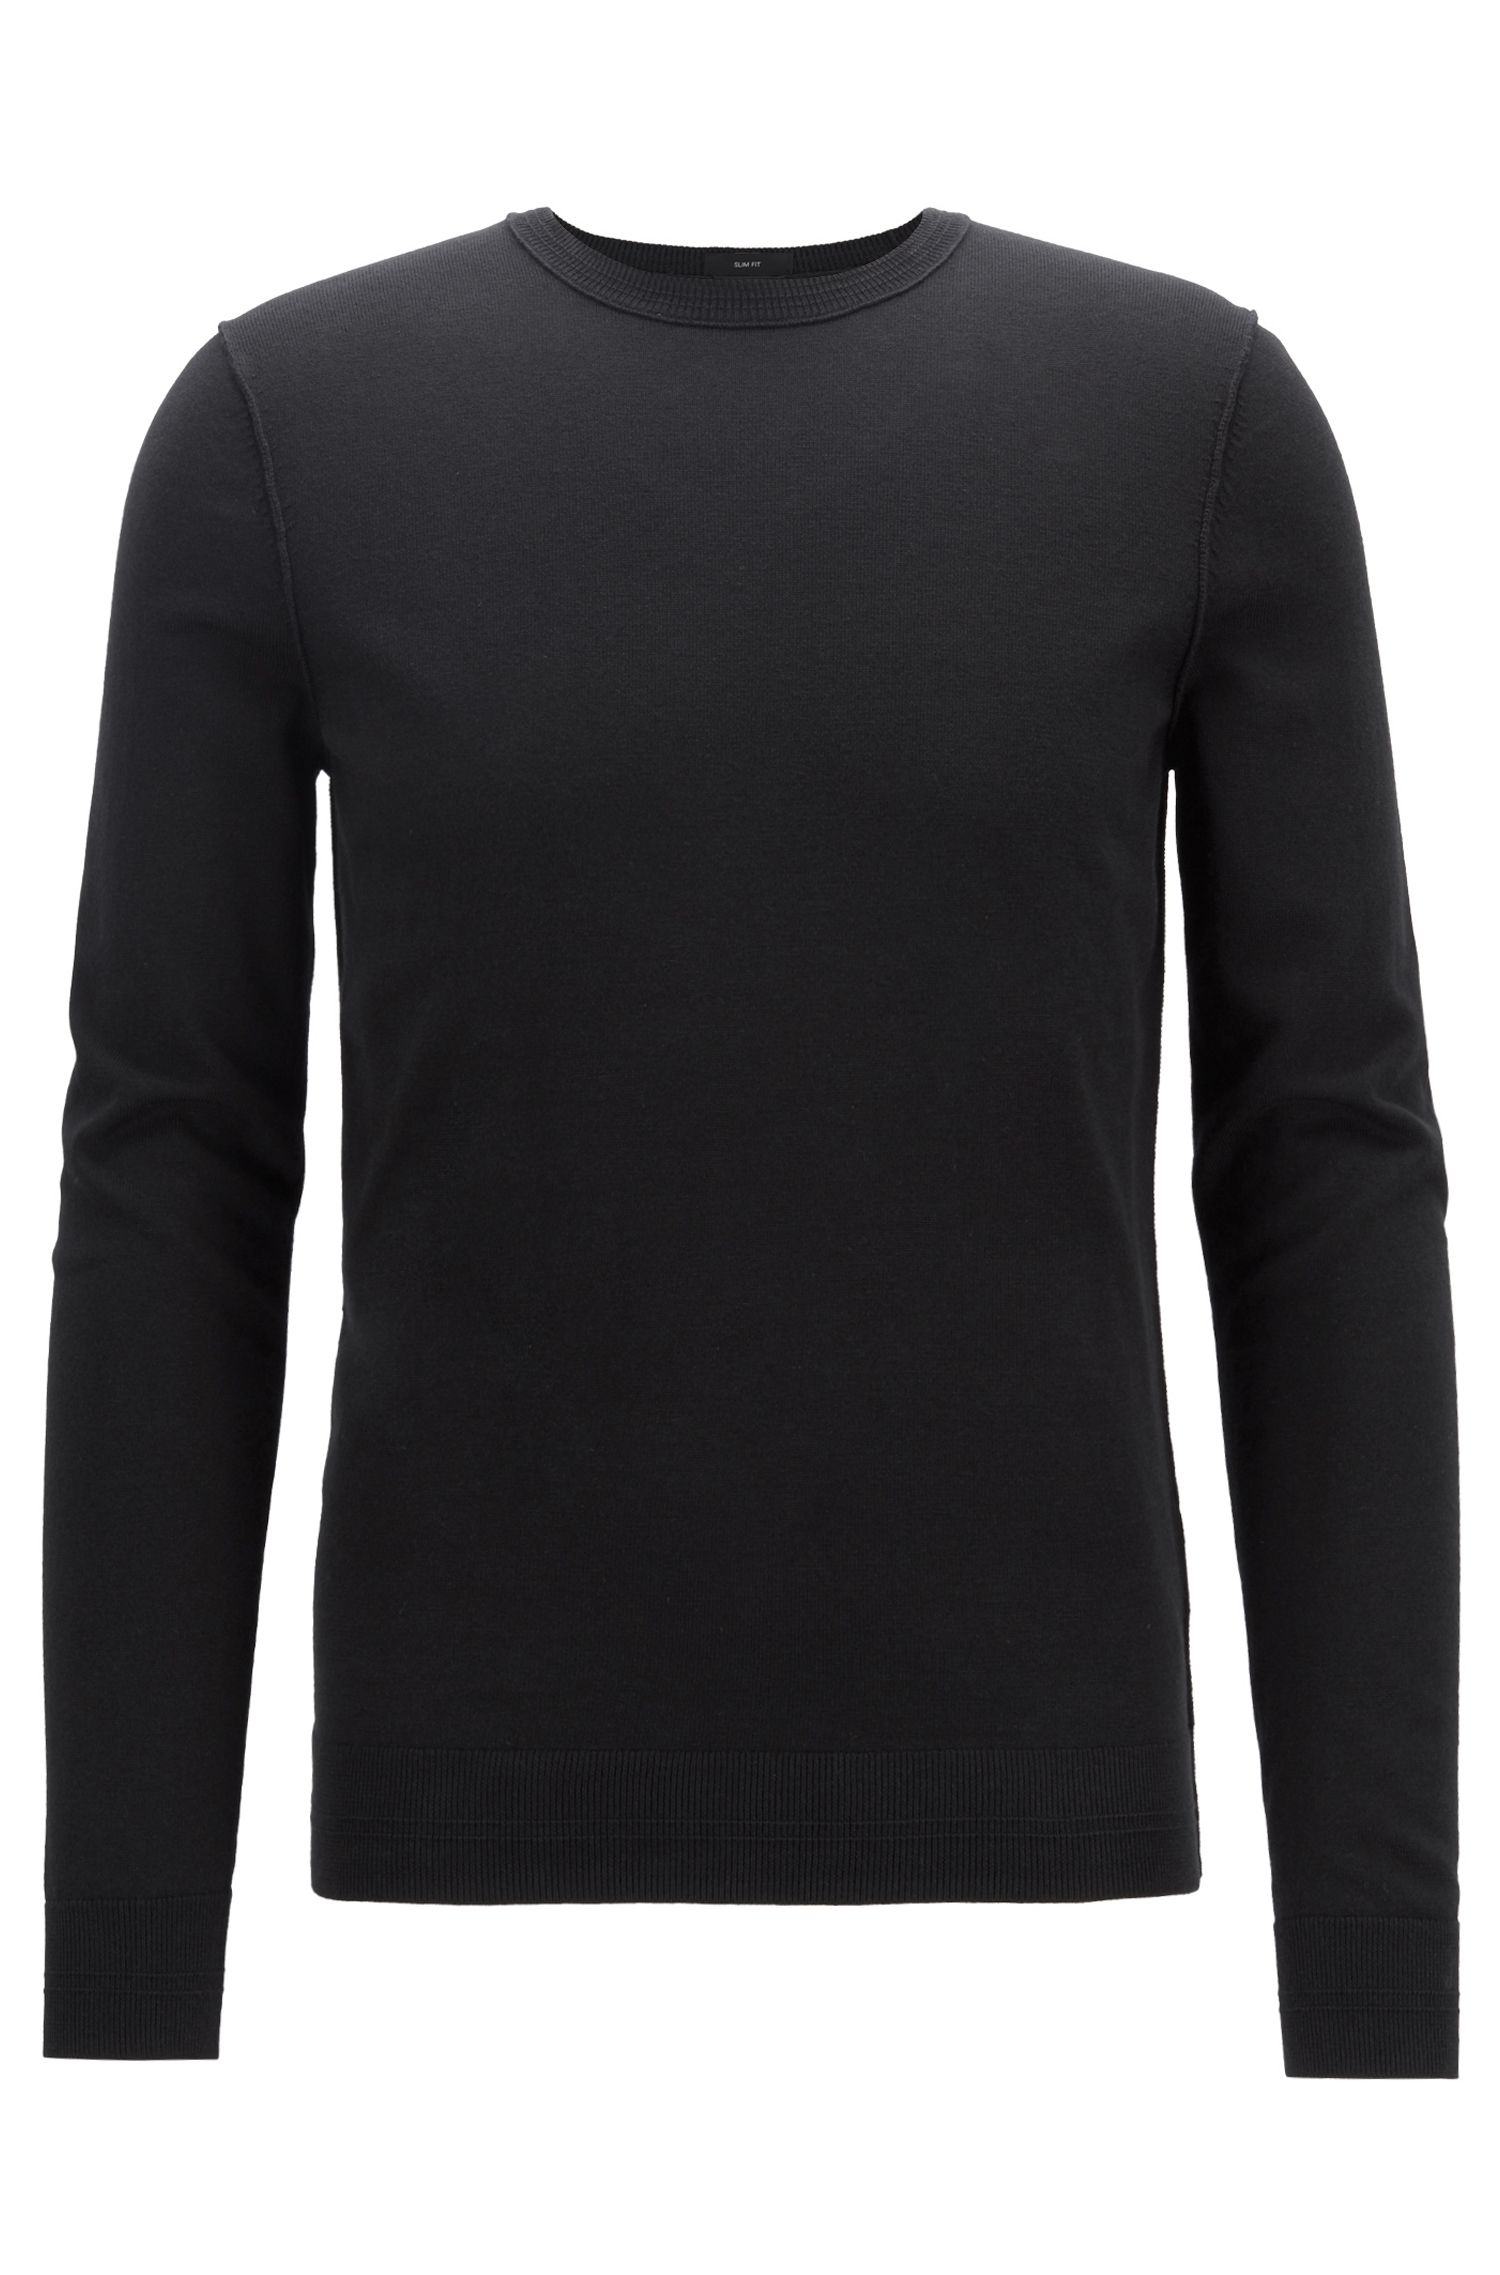 Crew-neck cotton-blend sweater with 3D ribbed accents, Black